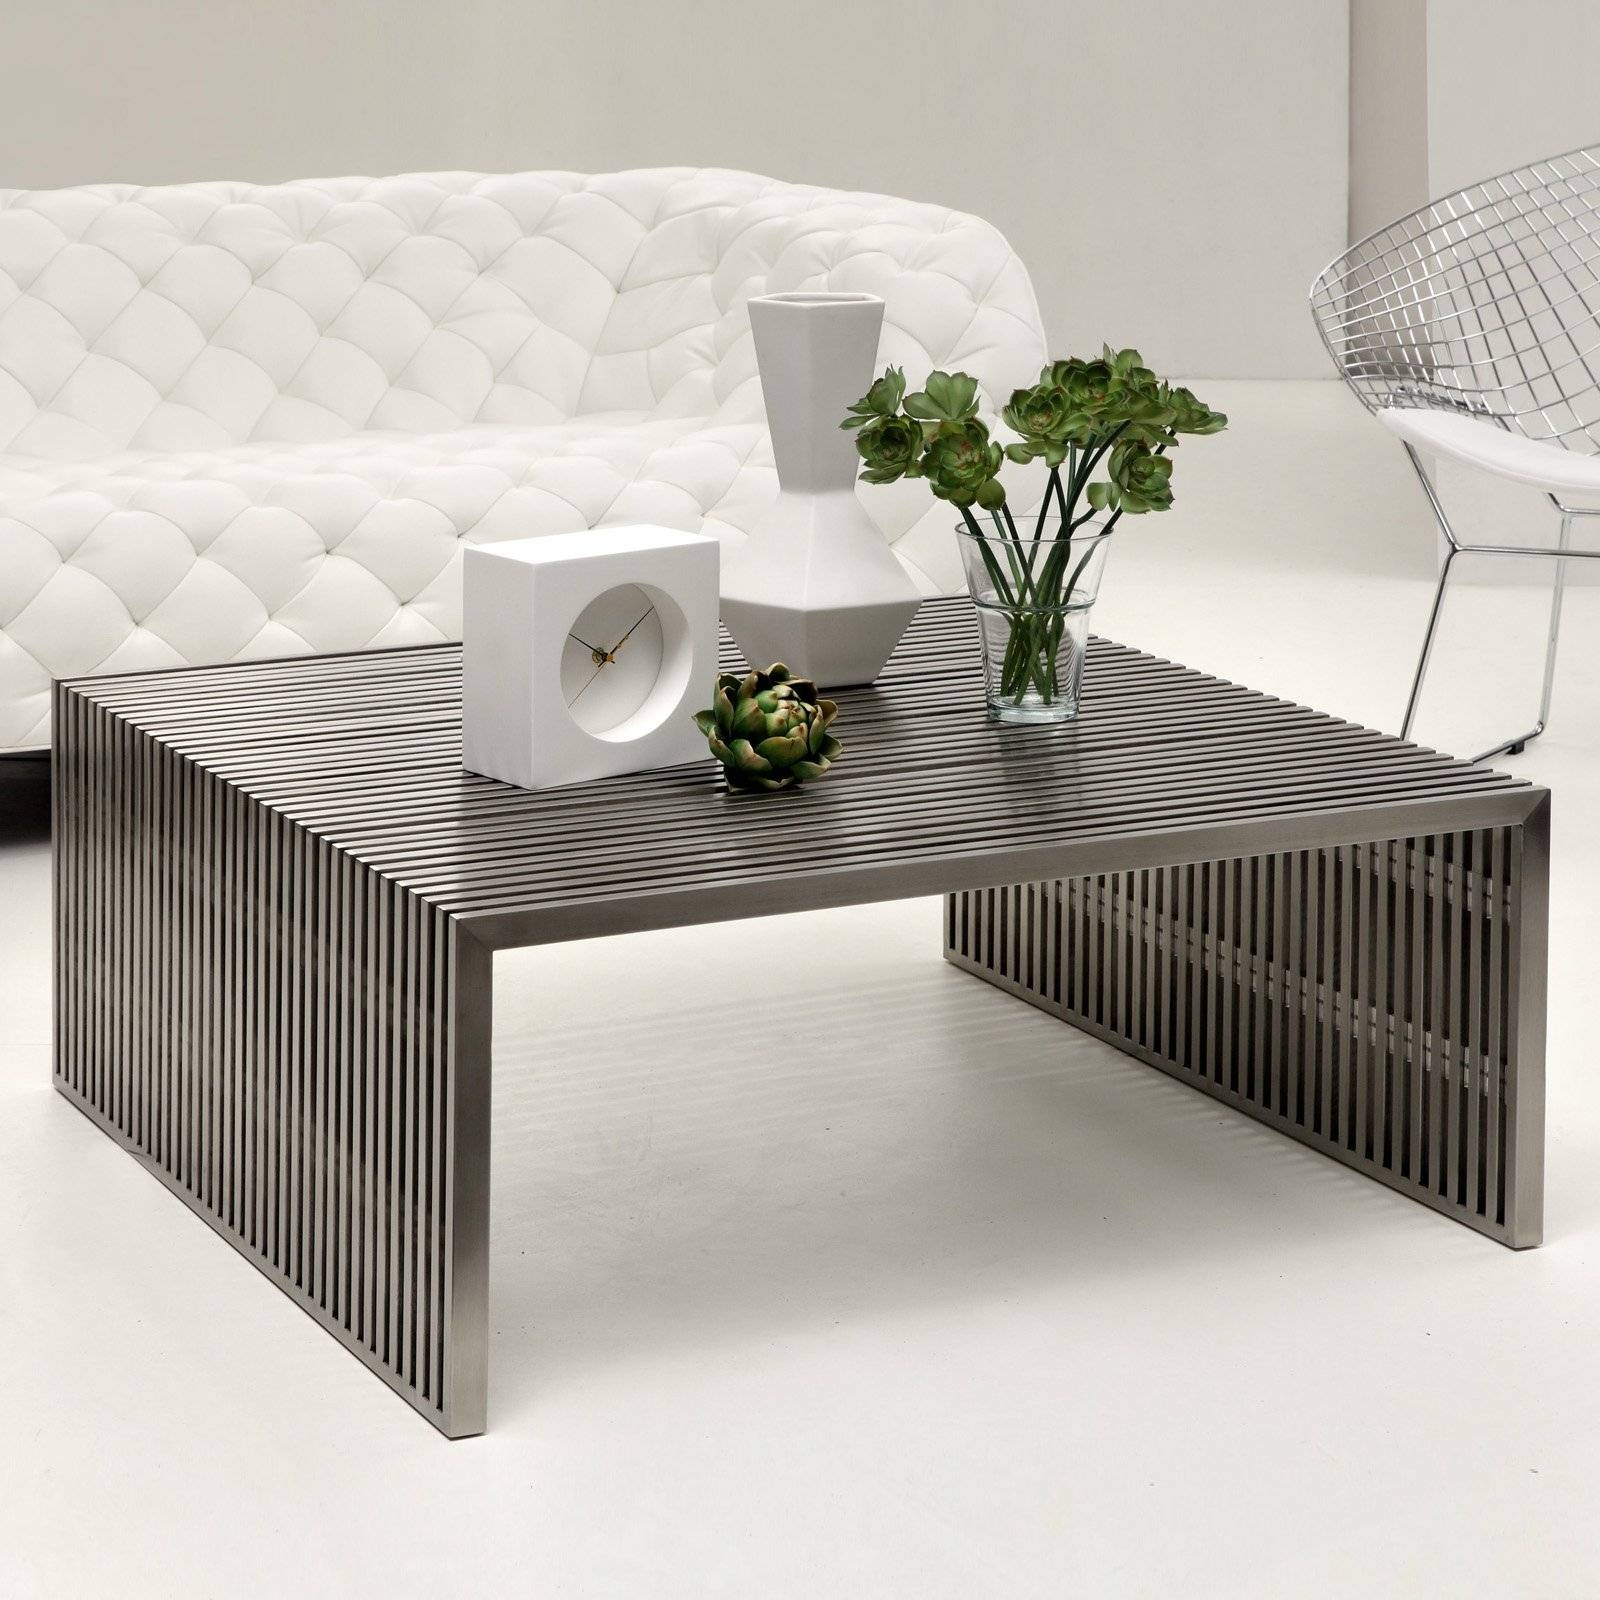 Low Square Teak Coffee Table Large Square Coffee Table Wood with regard to Low Square Coffee Tables (Image 21 of 30)